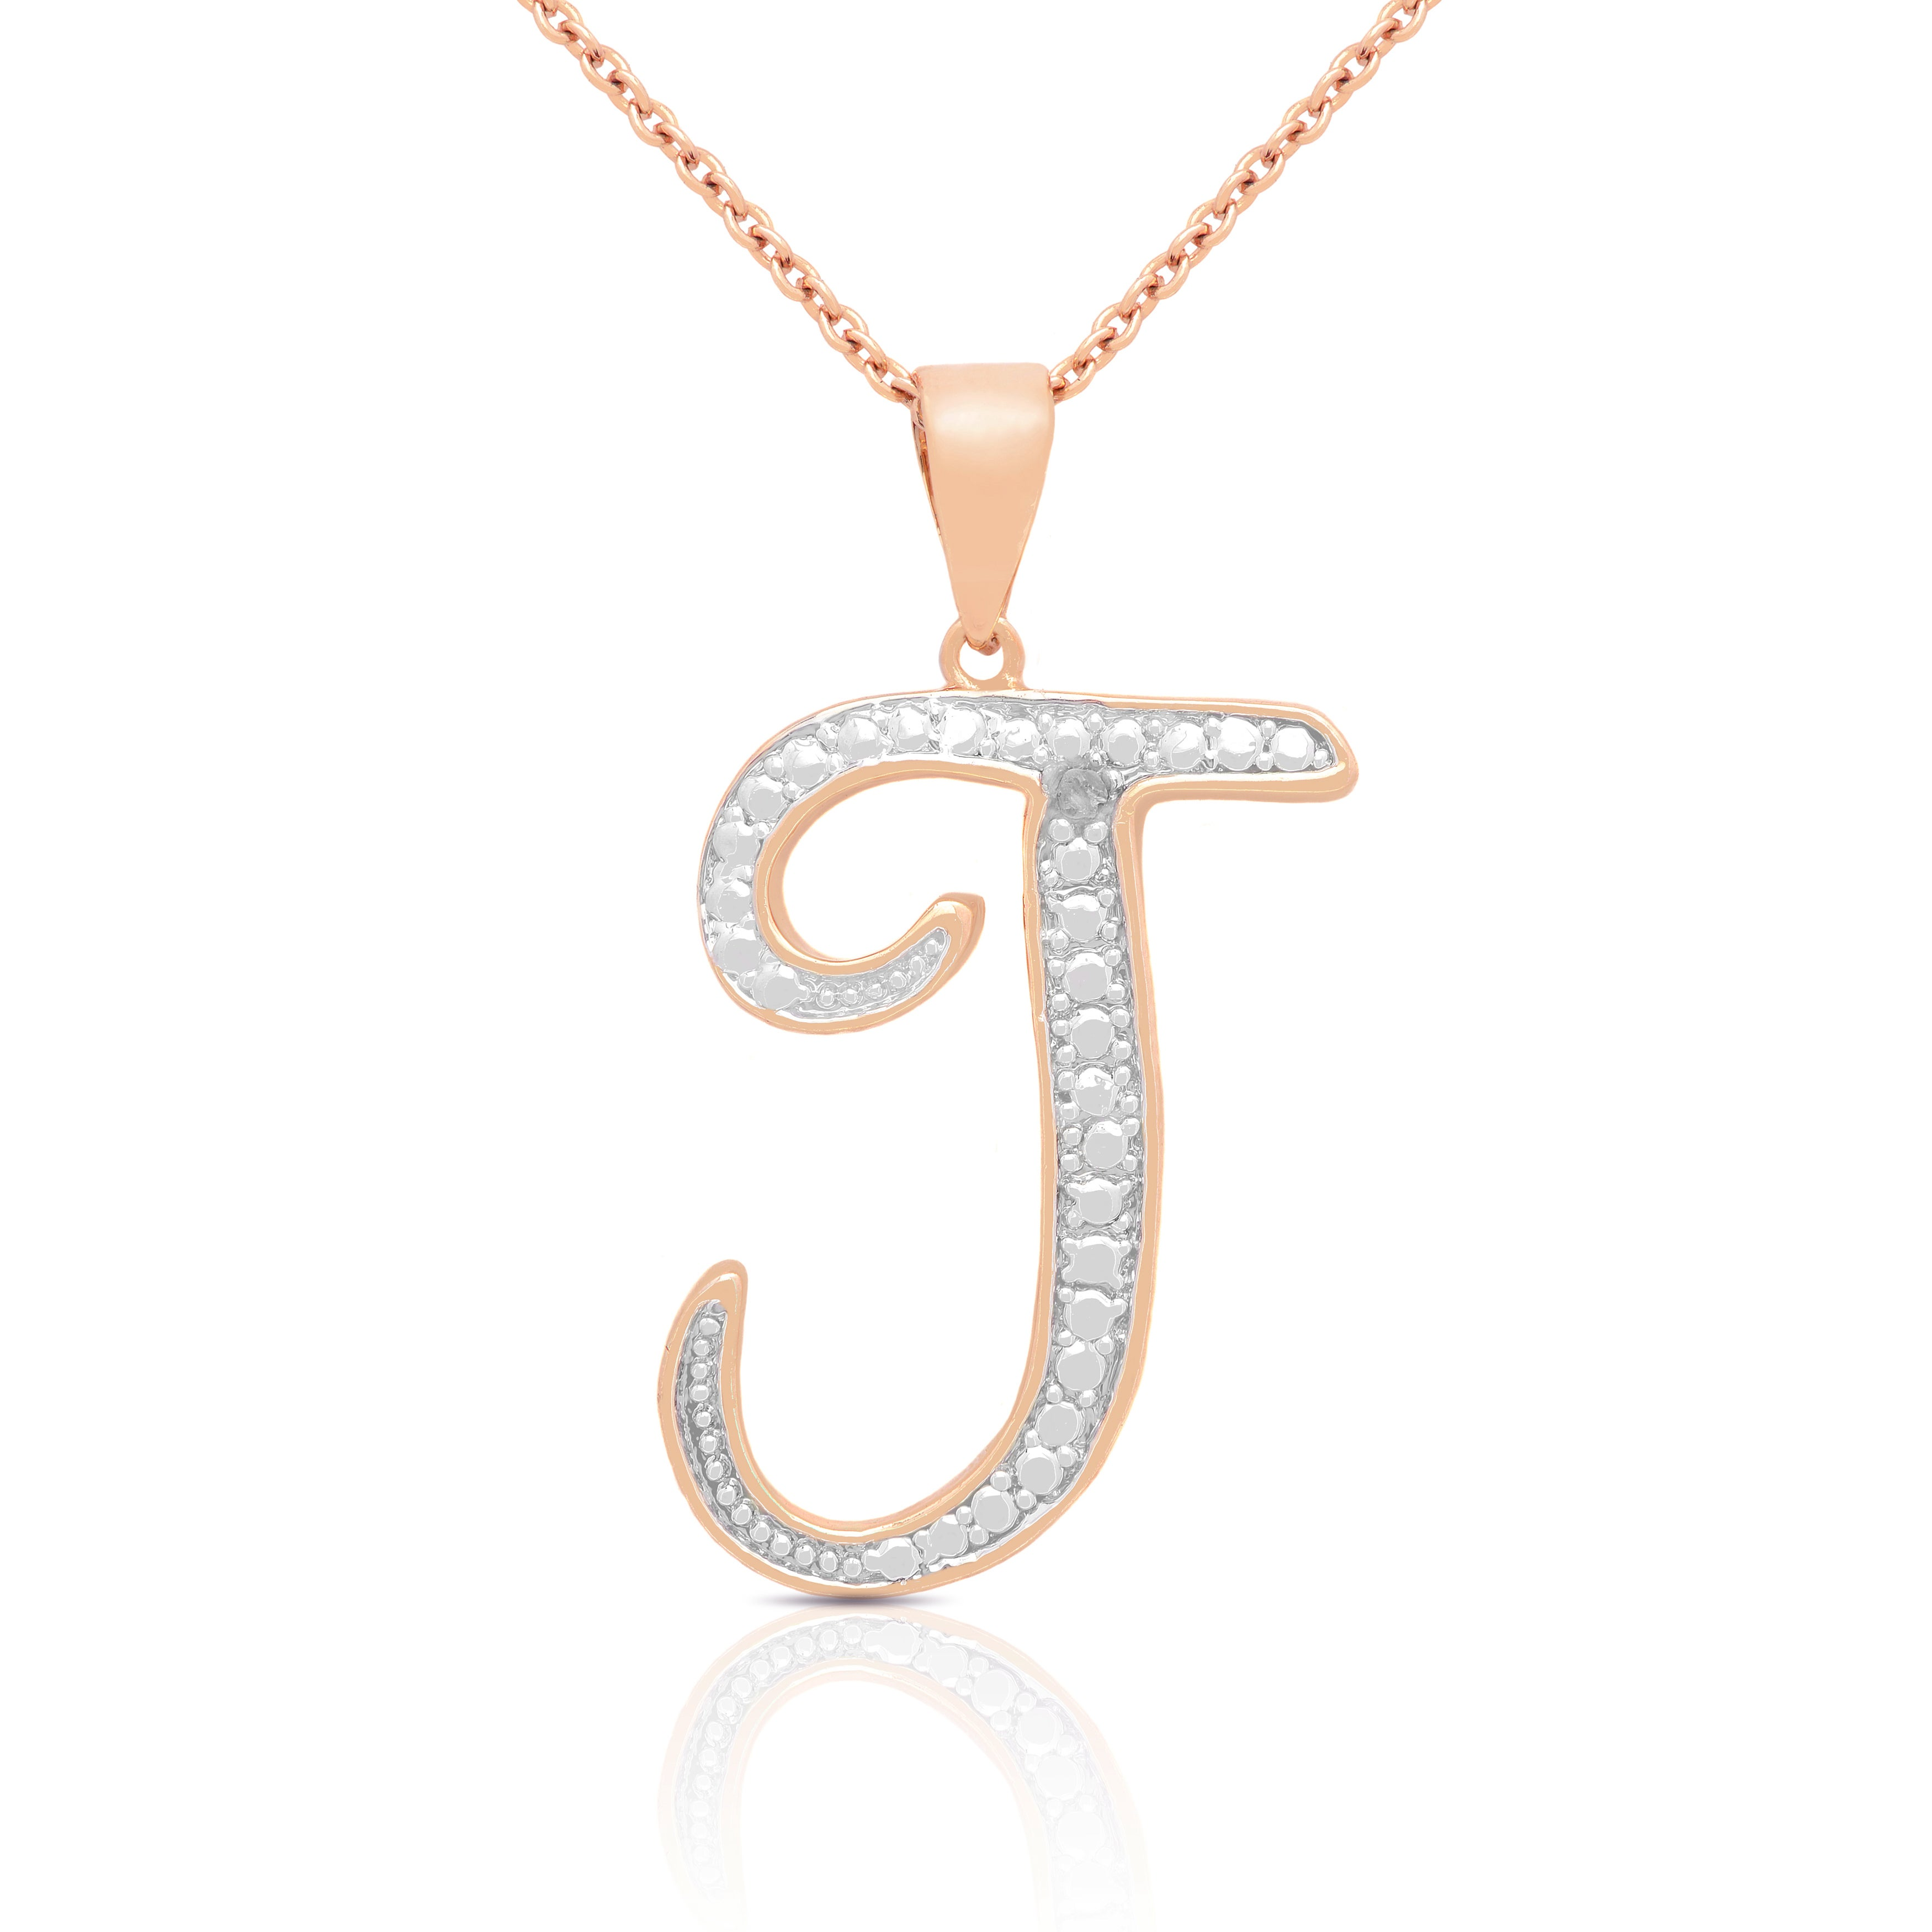 Shop 14k gold overlay diamond accent initial pendant necklace free shop 14k gold overlay diamond accent initial pendant necklace free shipping on orders over 45 overstock 8847029 aloadofball Choice Image